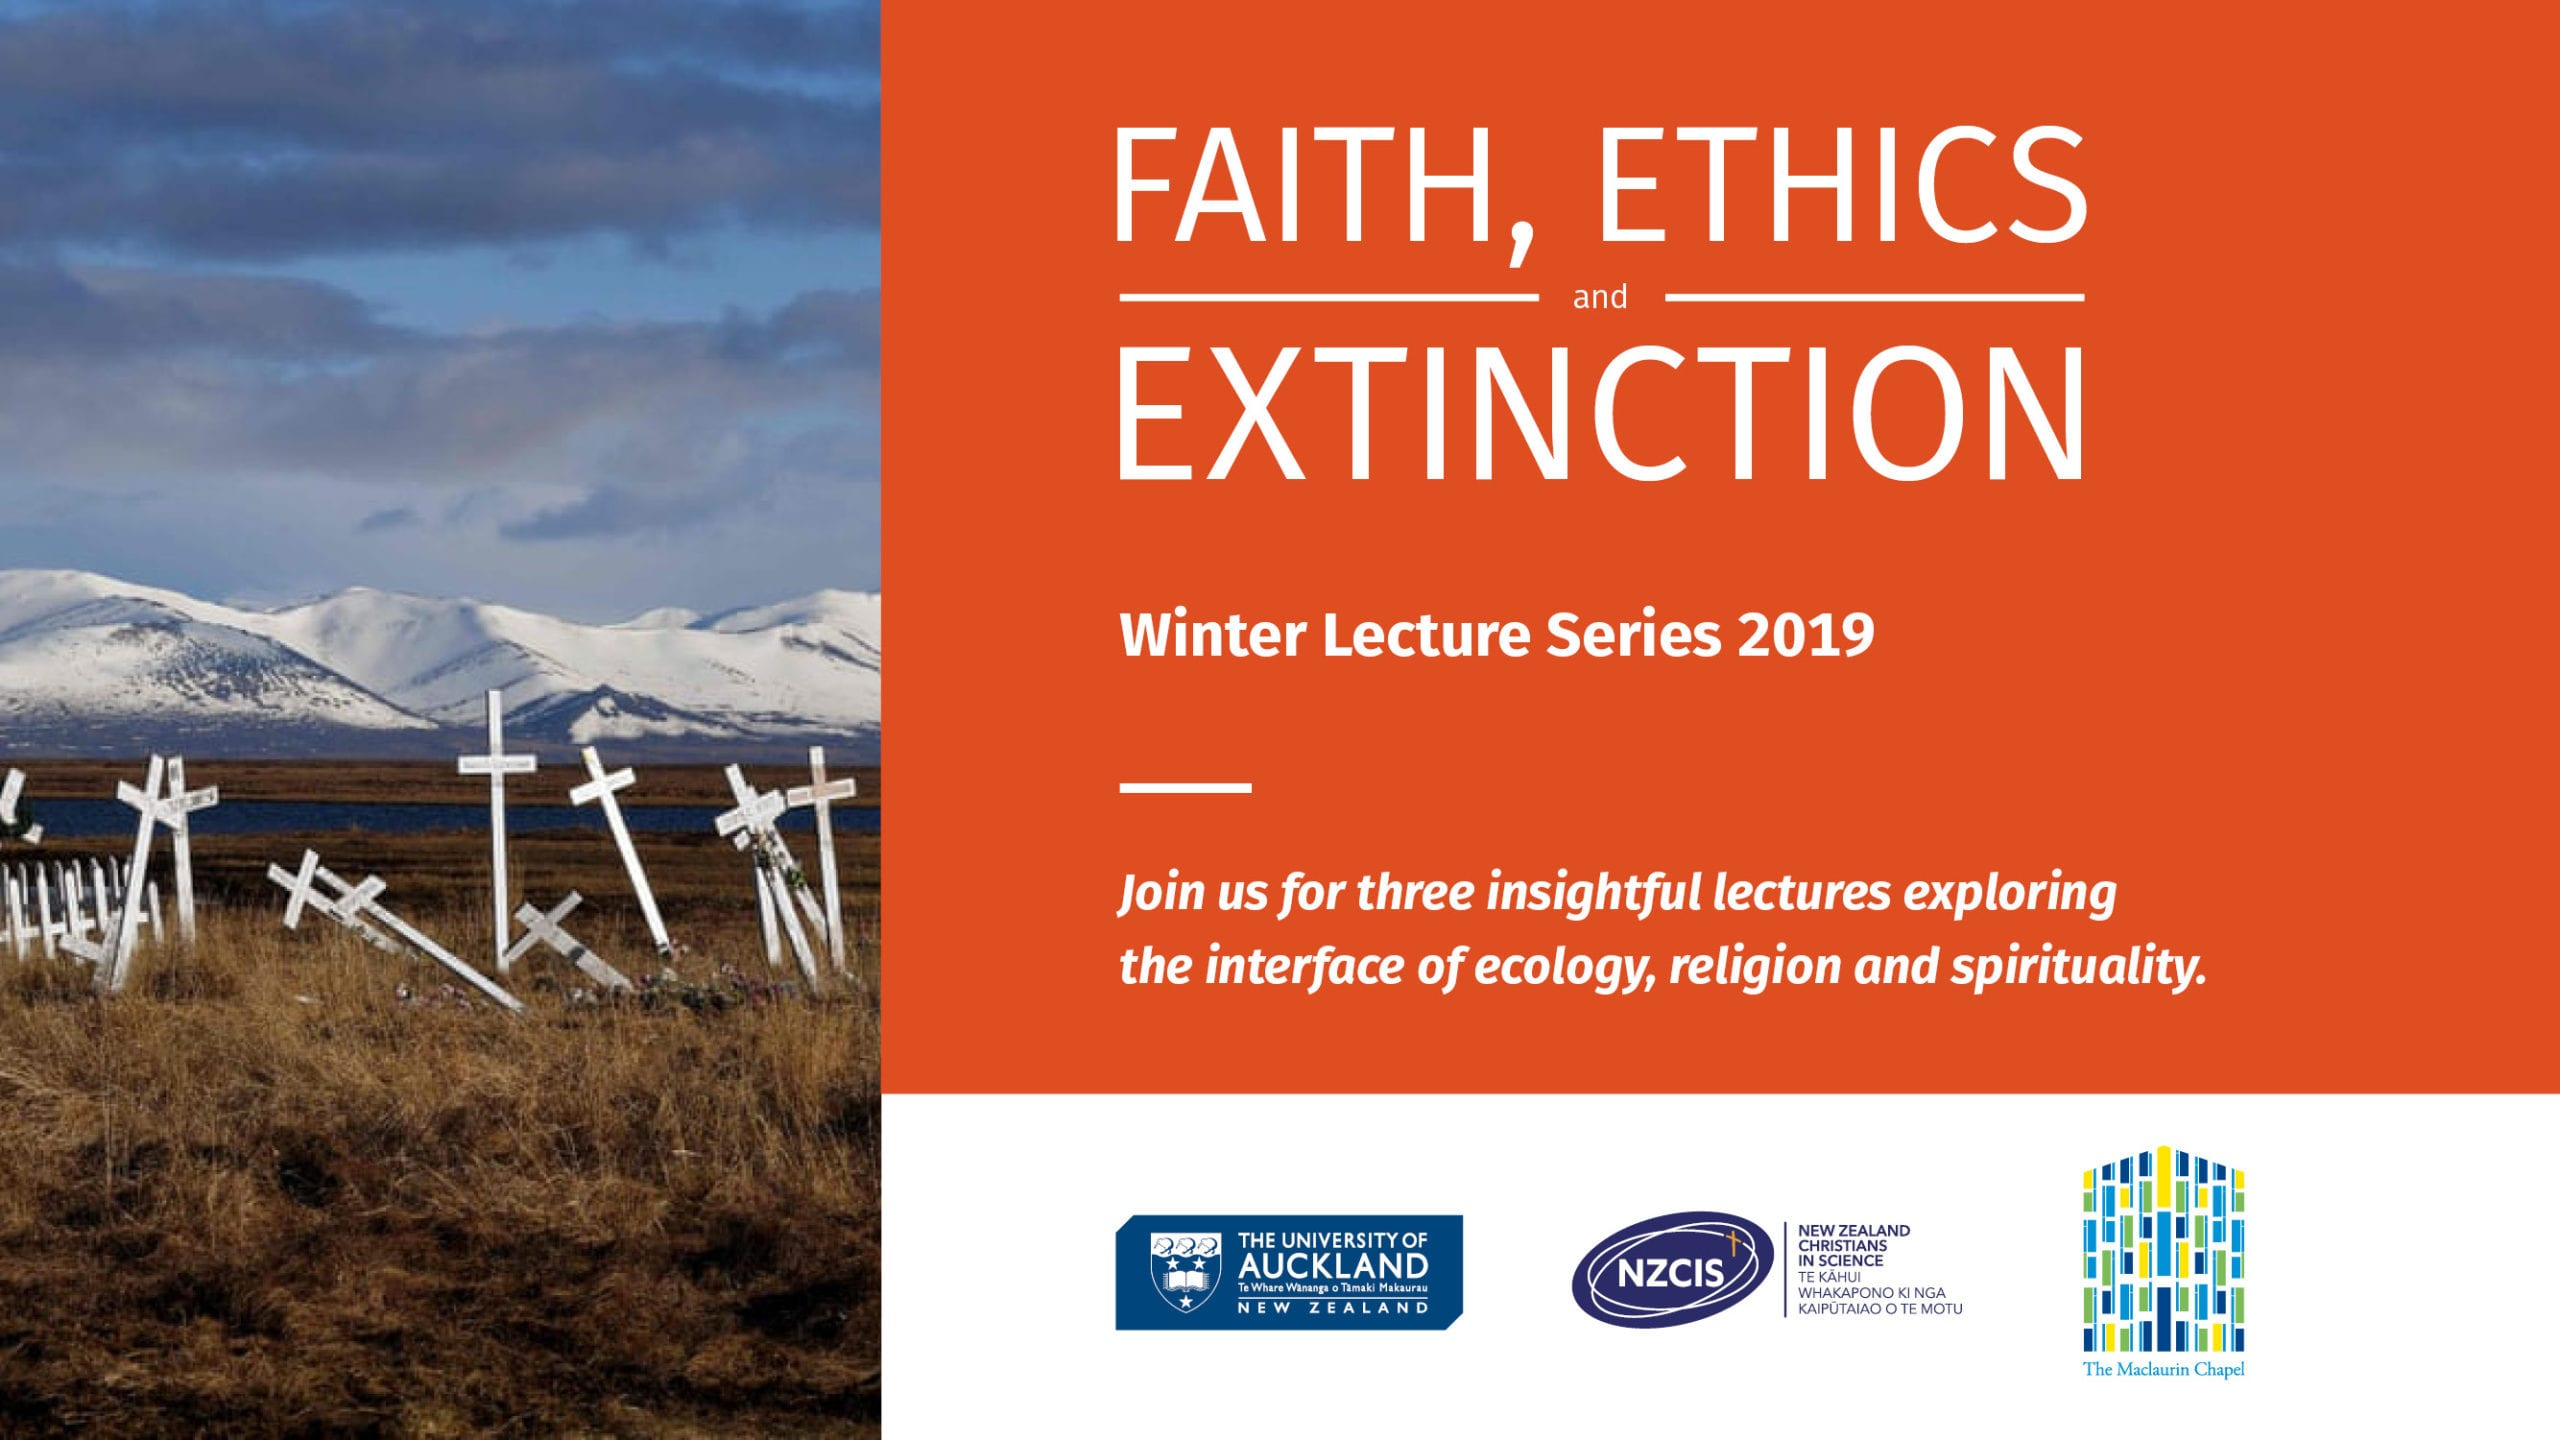 WINTER LECTURES: Uni of Auckland